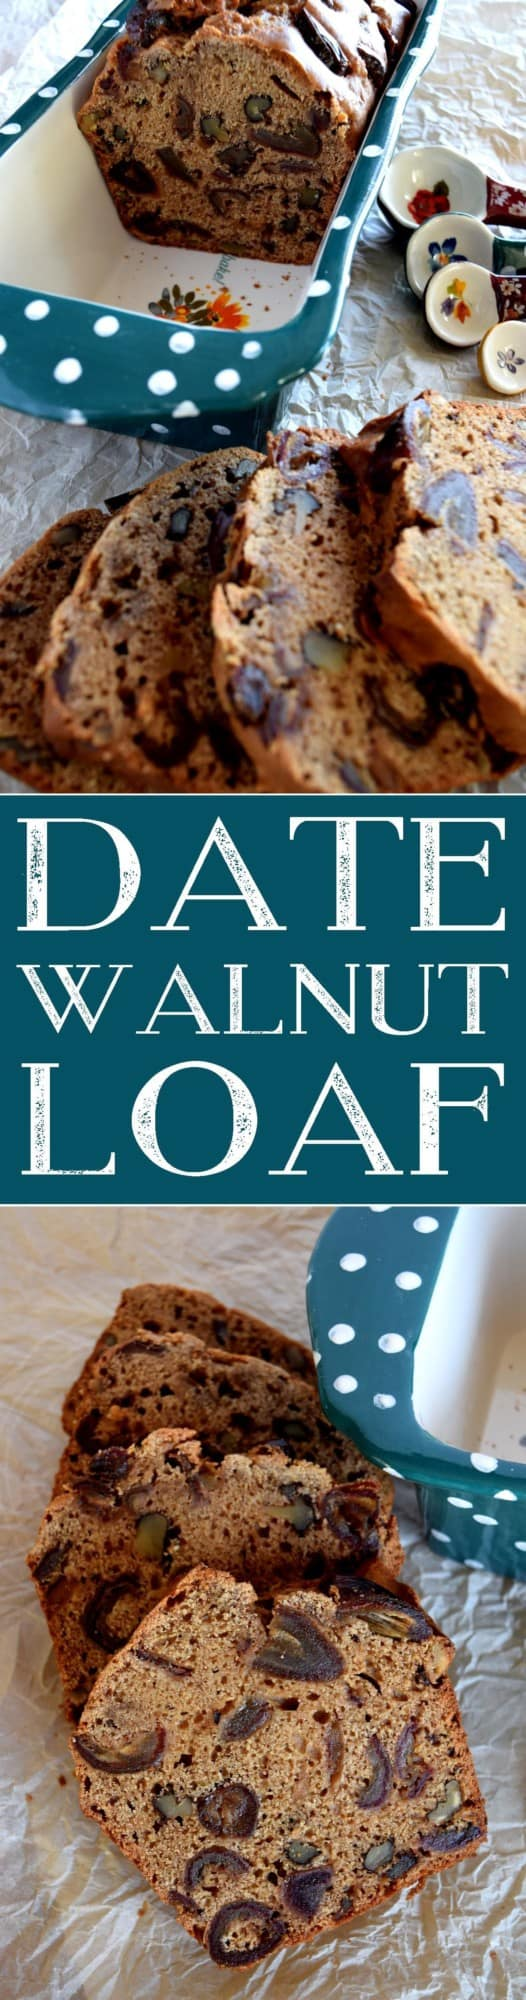 date-walnut-loaf